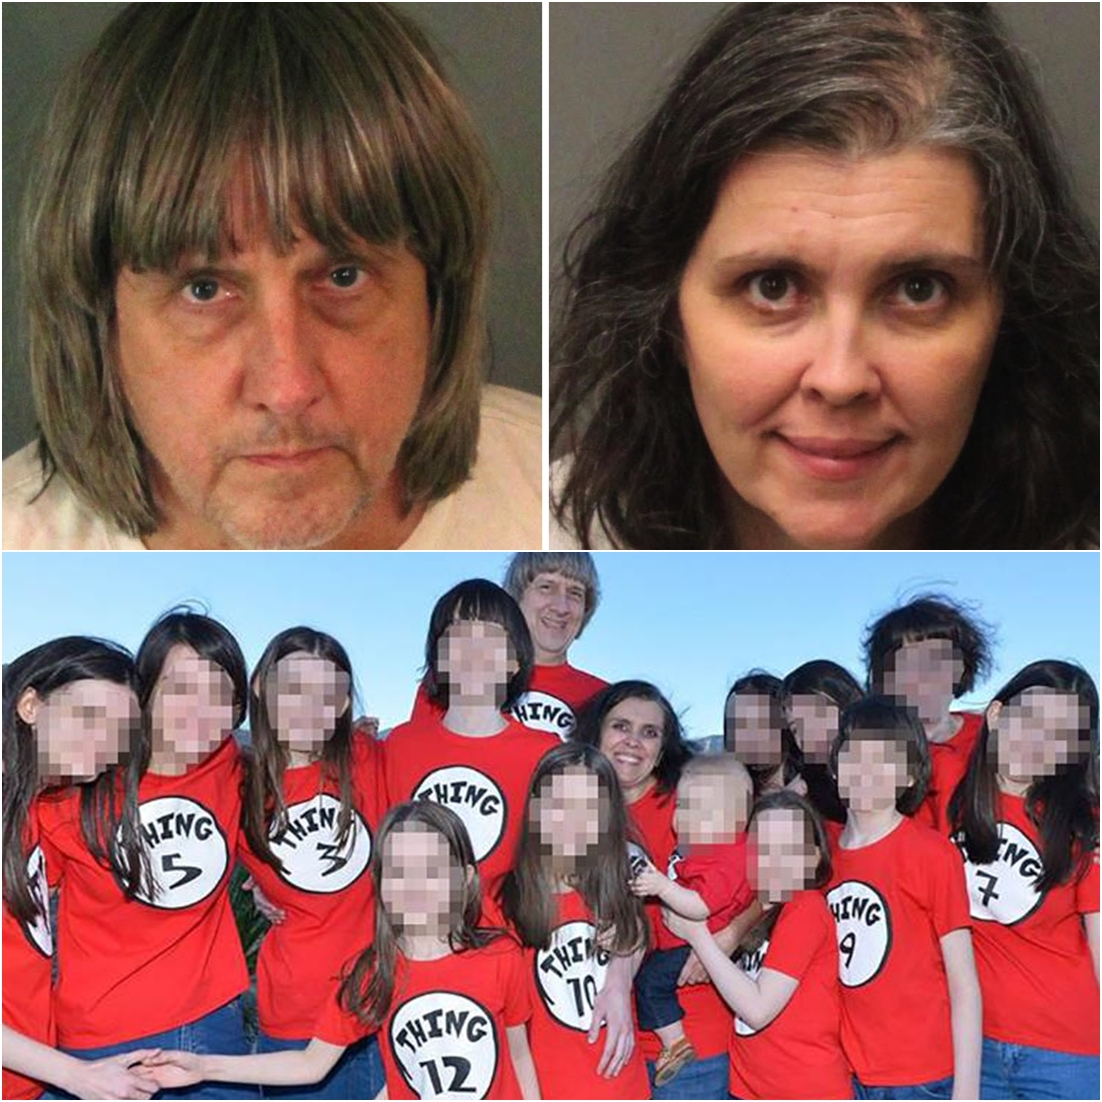 Couple was arrested after police discovered thattheir 13 childrenhad been held captive in their California home in filthy conditions, some shackled to beds with chains and padlocks